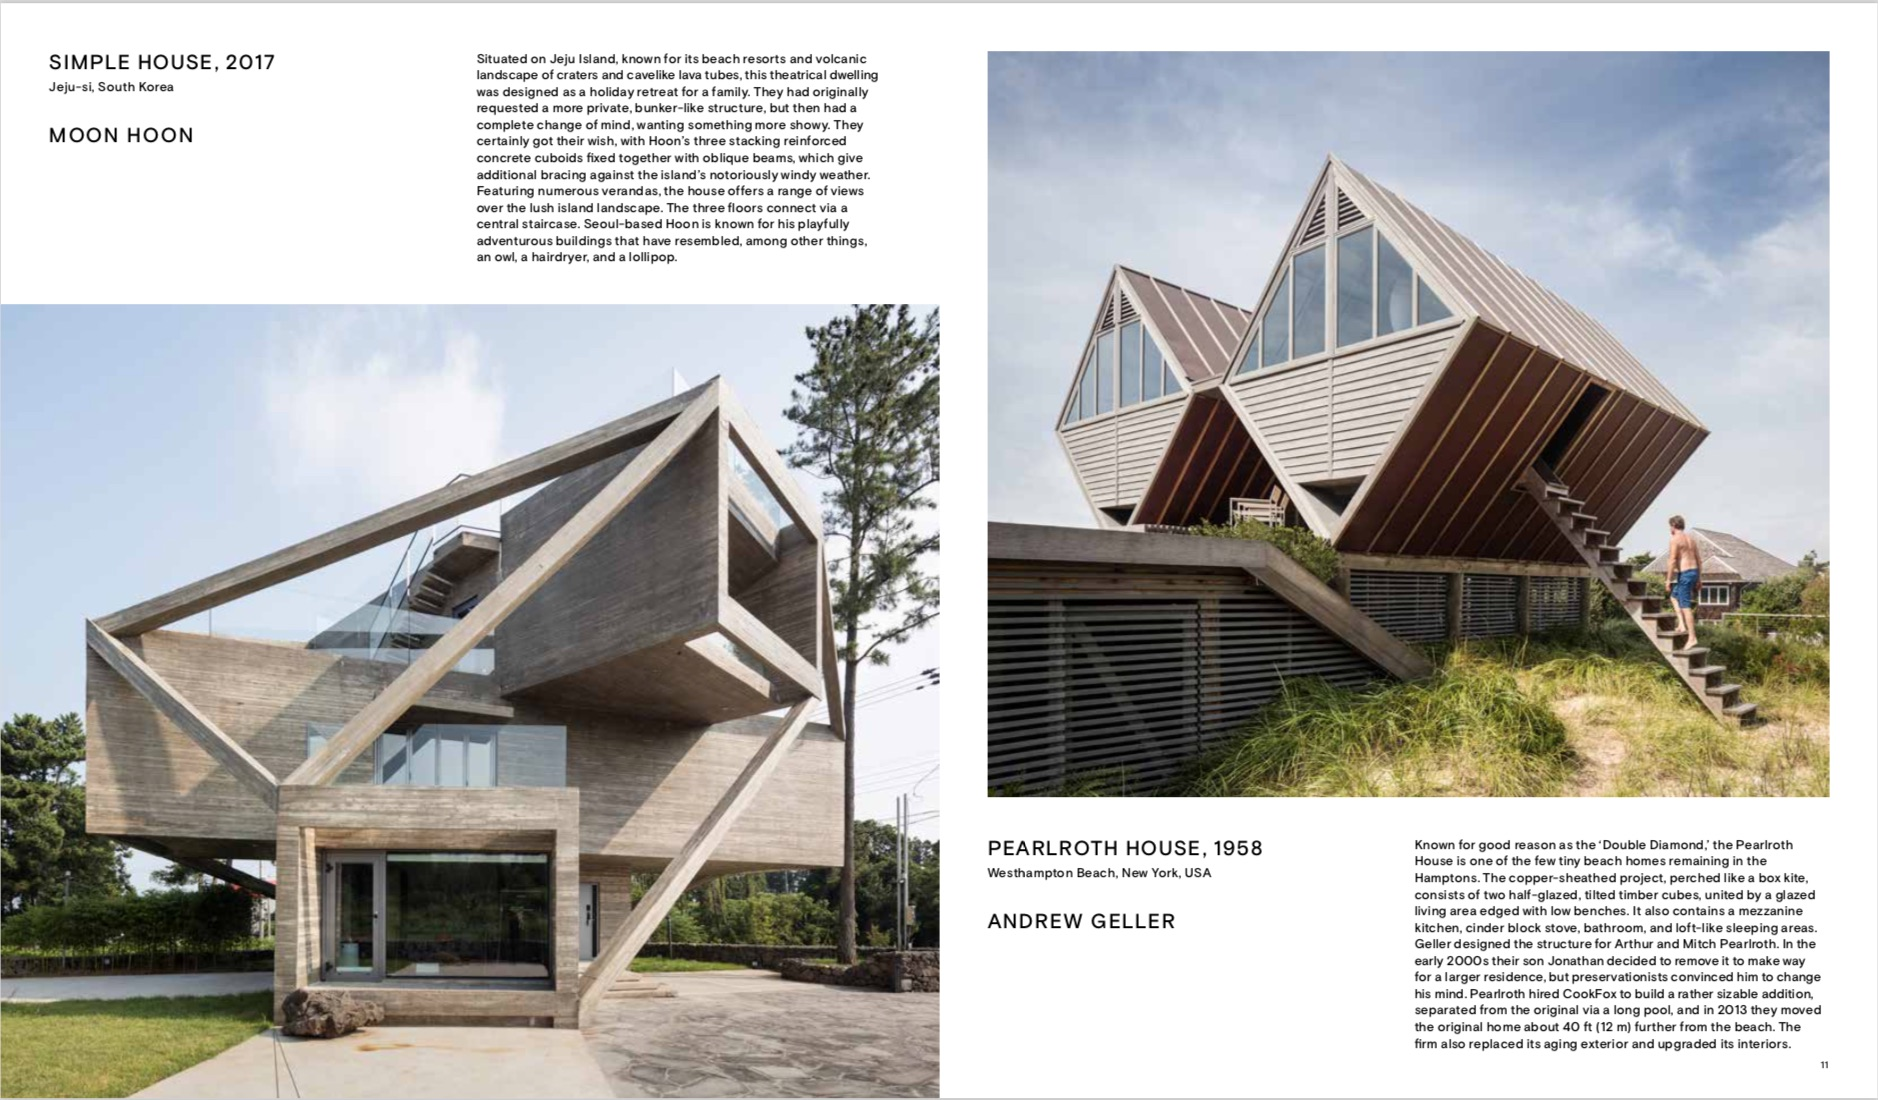 By Phaidon Editors from Houses: Extraordinary Living copyright Phaidon 2019